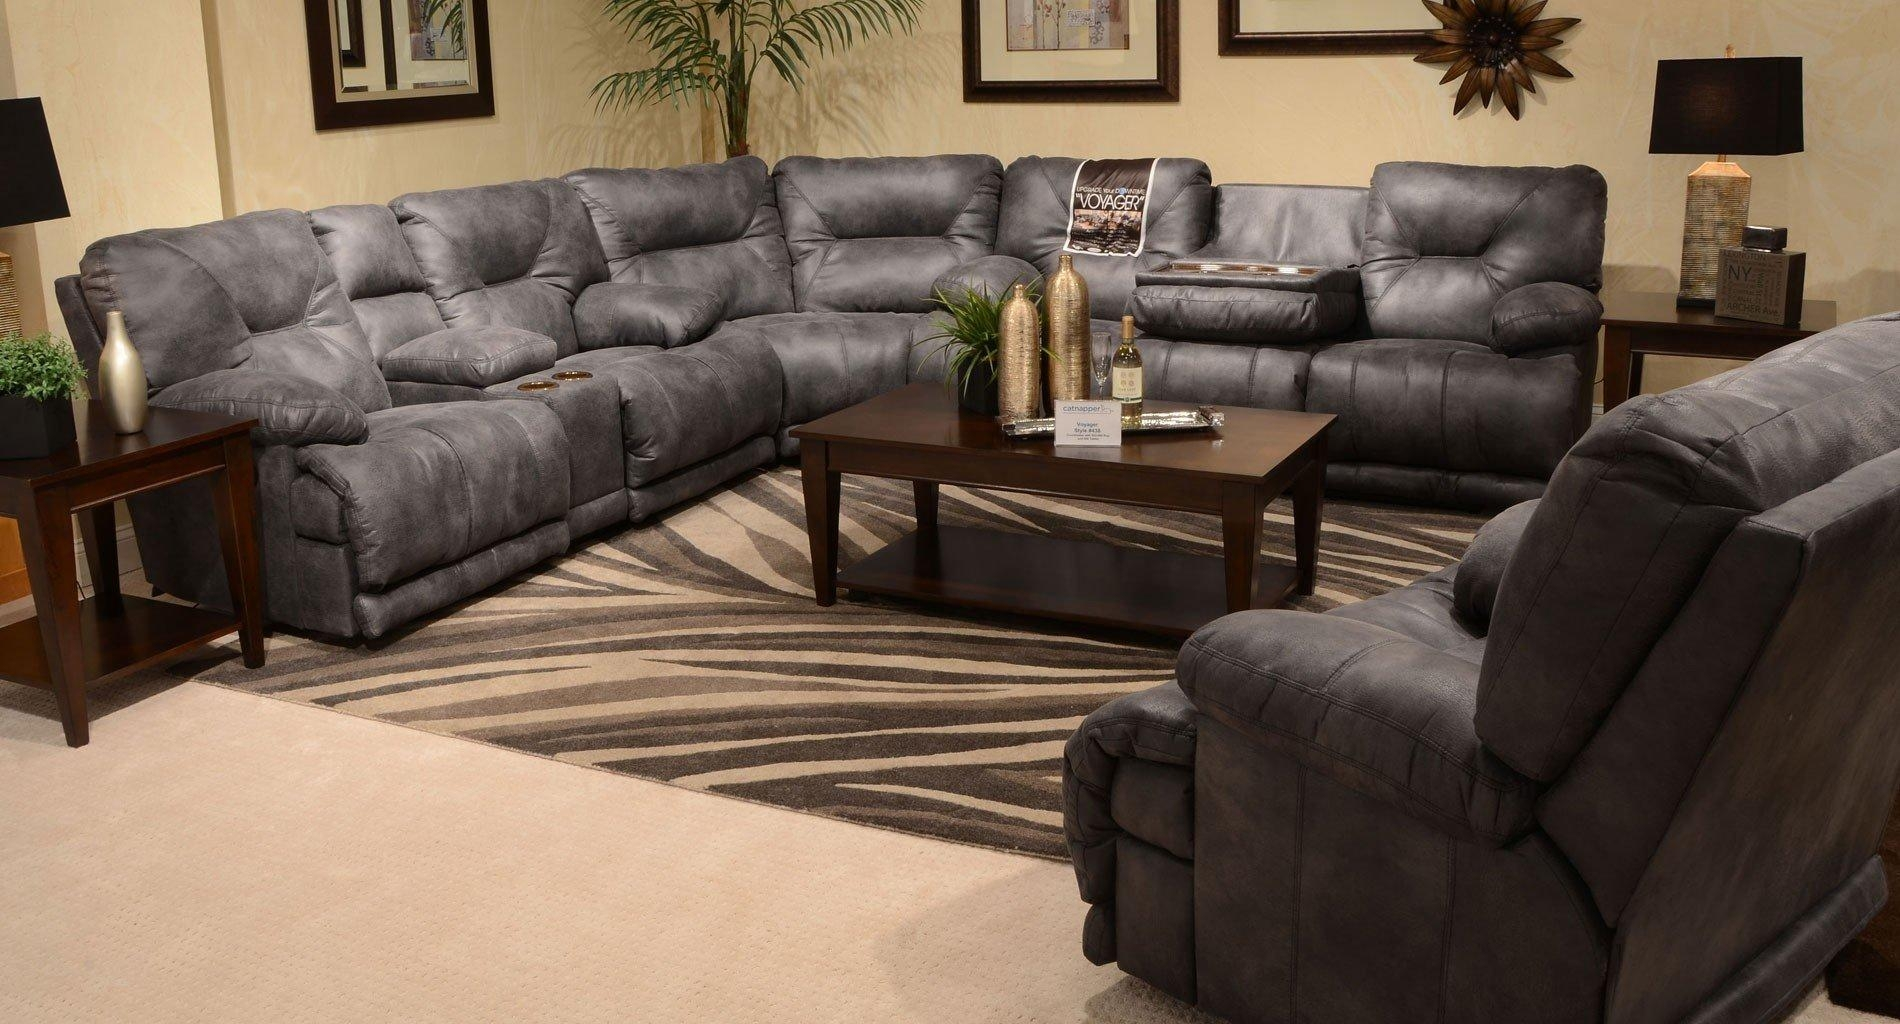 Voyager Reclining Sectional Set (Slate) Catnapper | Furniture Cart In Catnapper Reclining Sofas (Image 19 of 20)